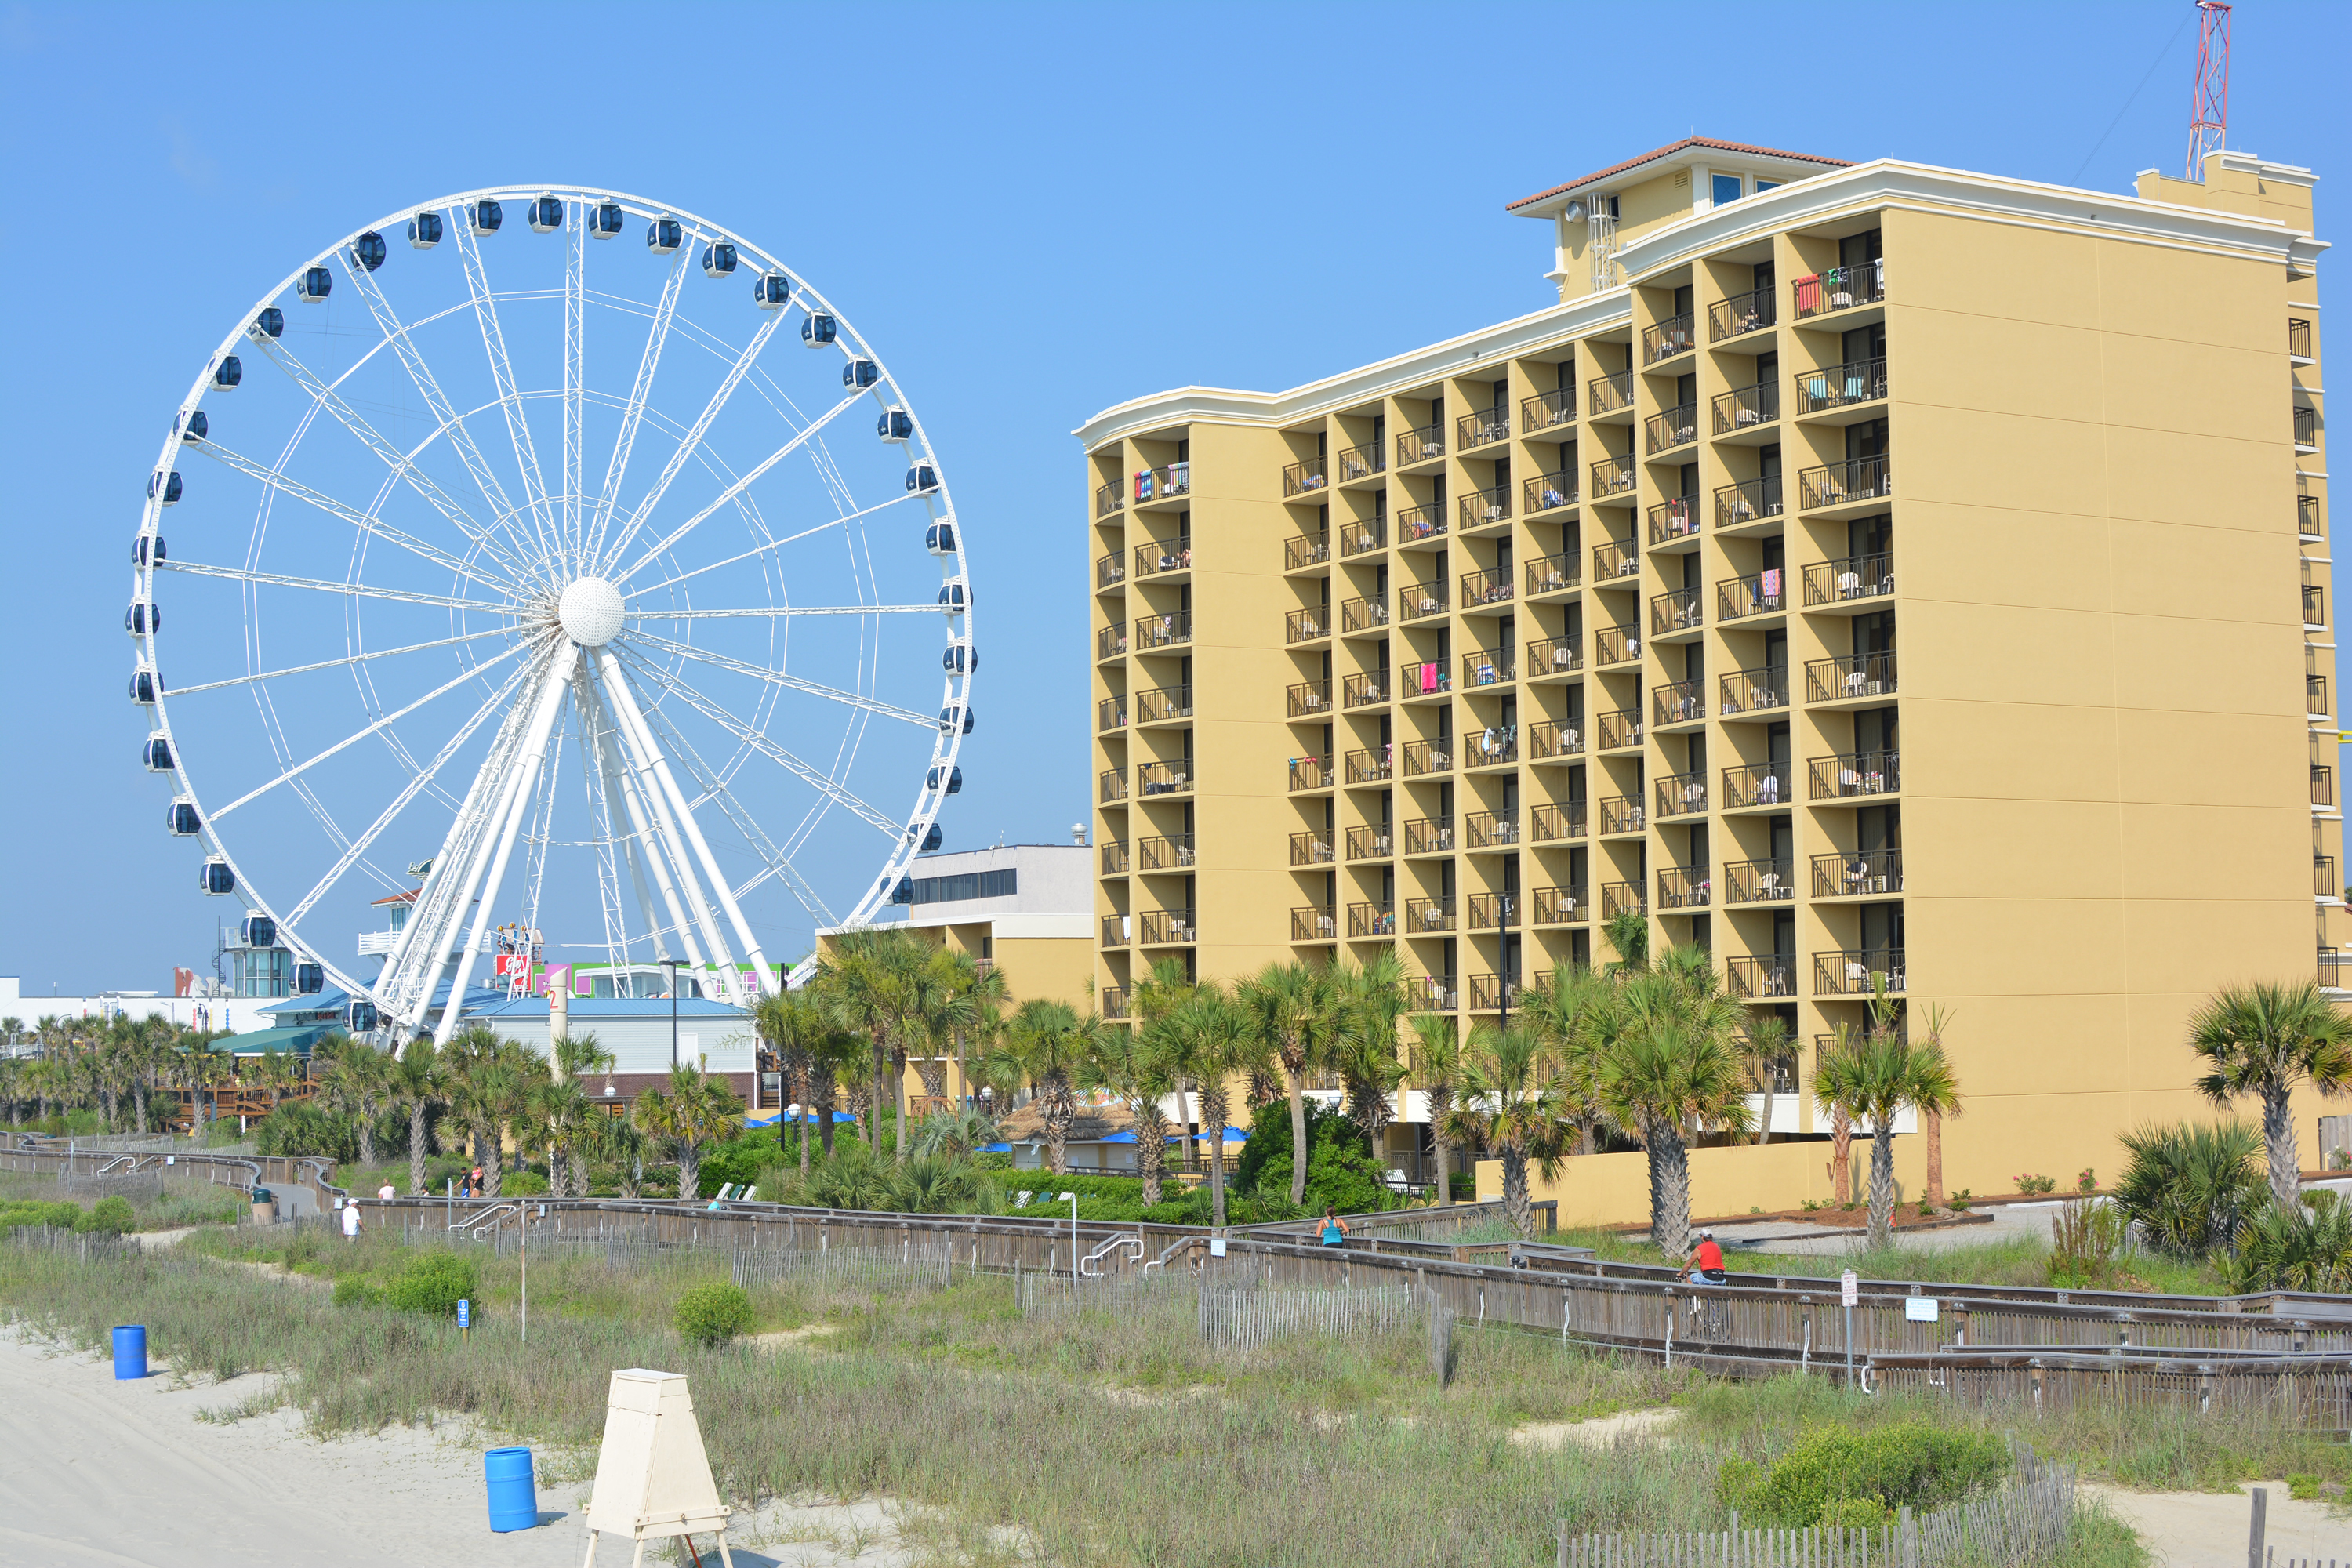 Holiday Inn at the Pavilion view from Pier 14 - Sky wheel & beach